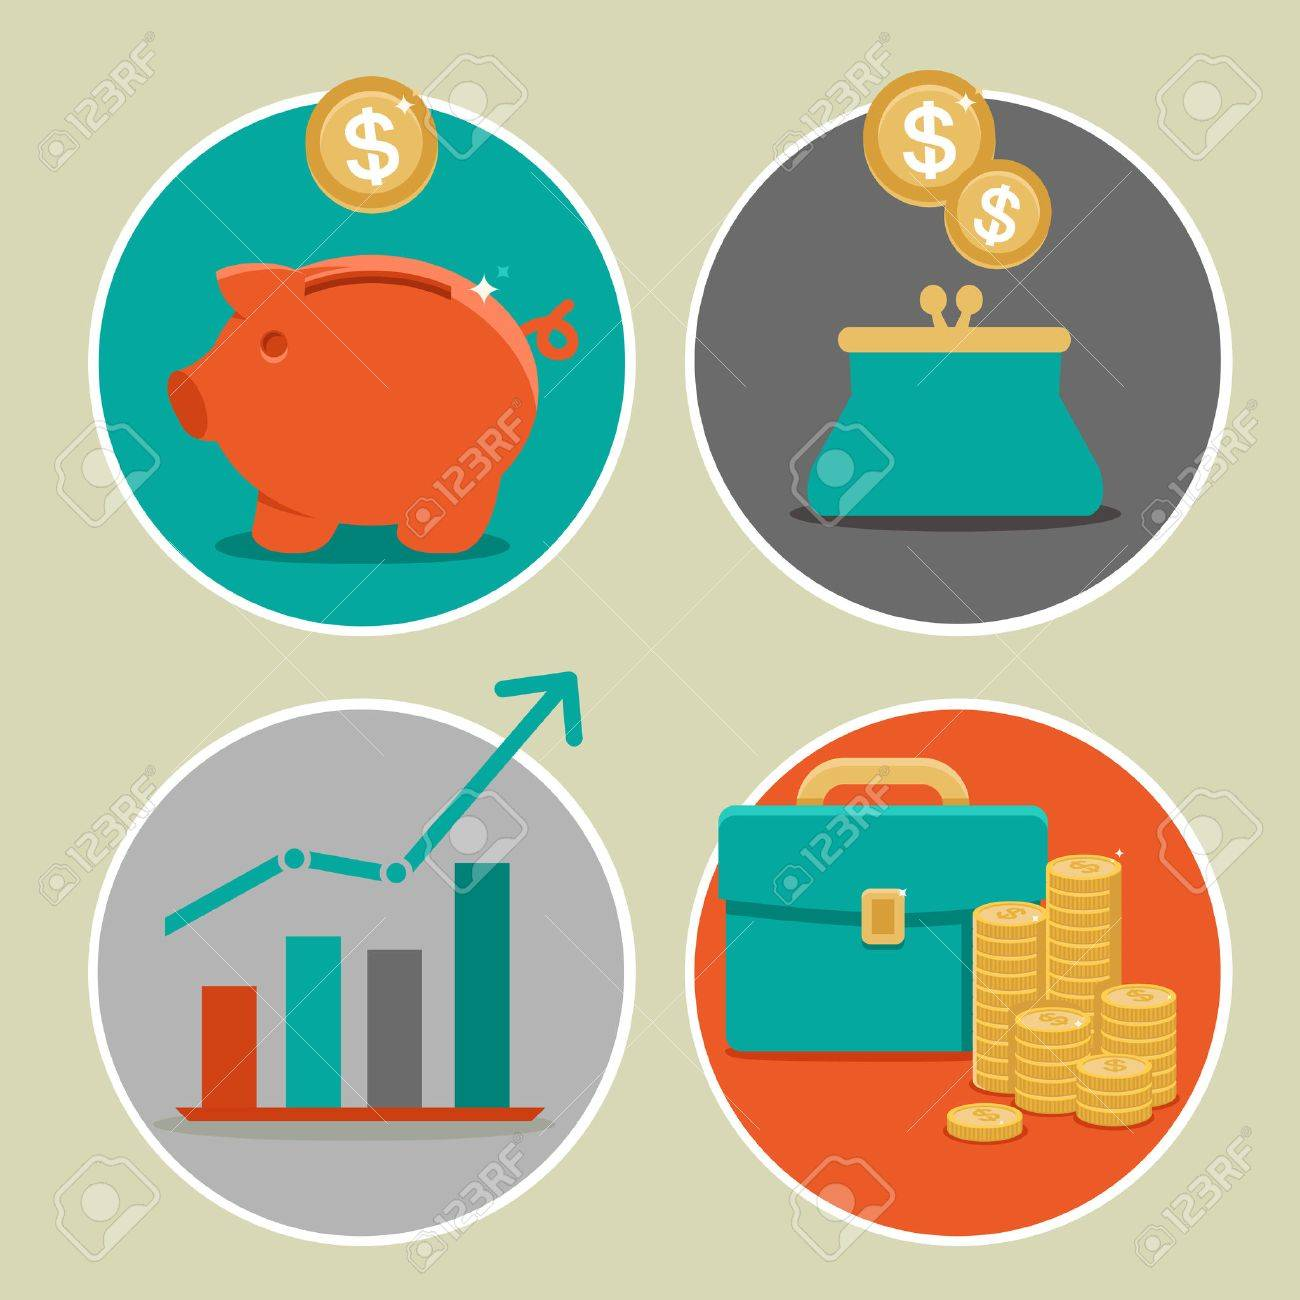 Vector money and business icons in flat style - infographic design elements - 23366275